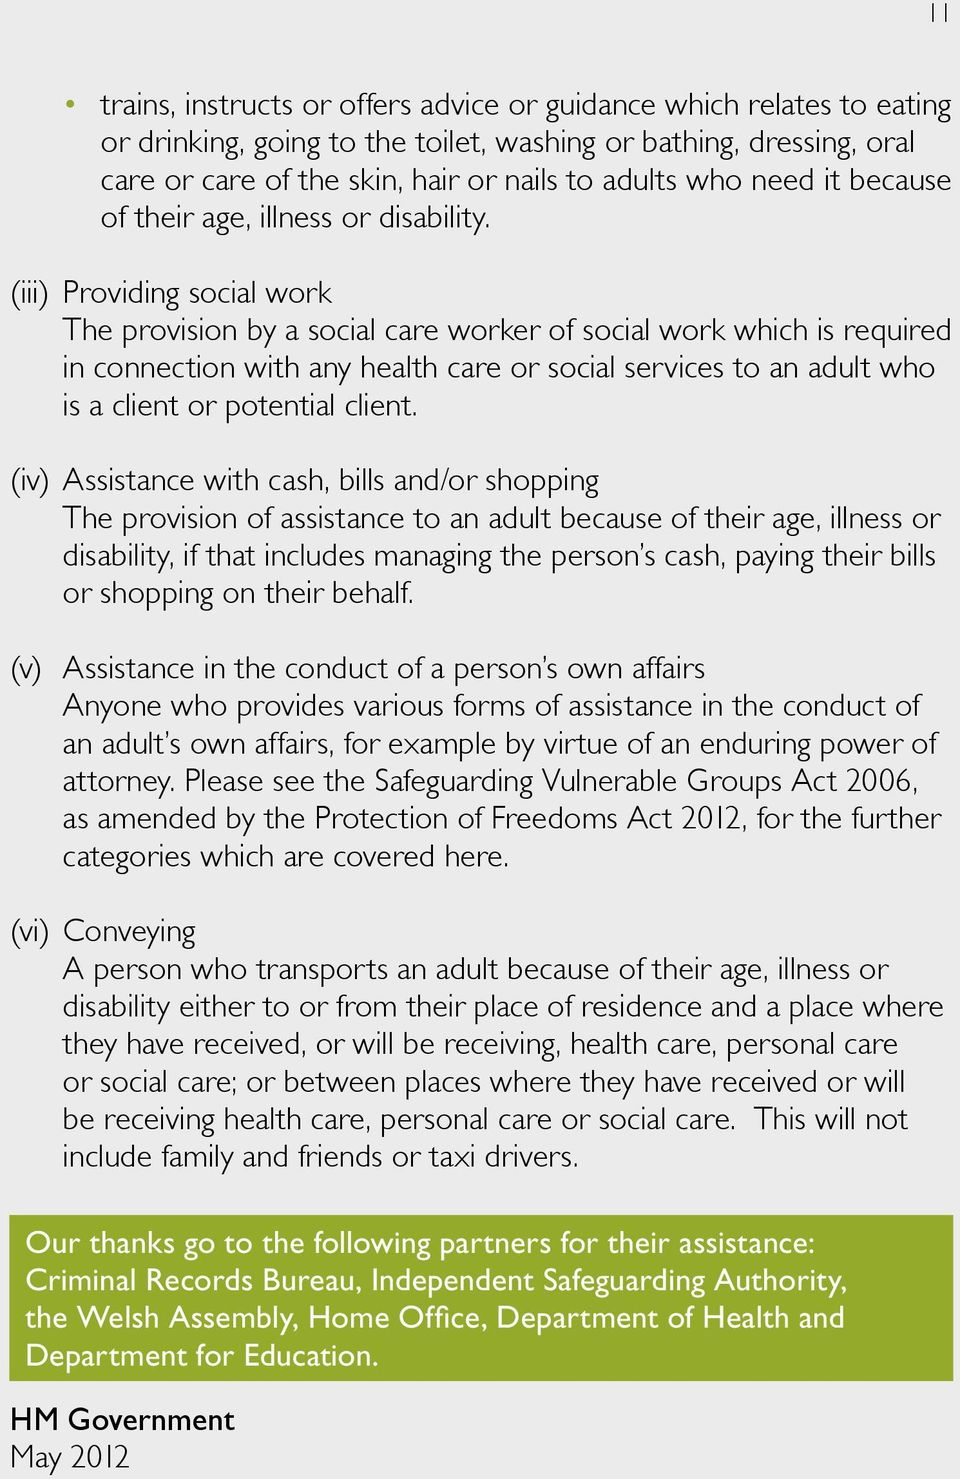 (iii) Providing social work The provision by a social care worker of social work which is required in connection with any health care or social services to an adult who is a client or potential